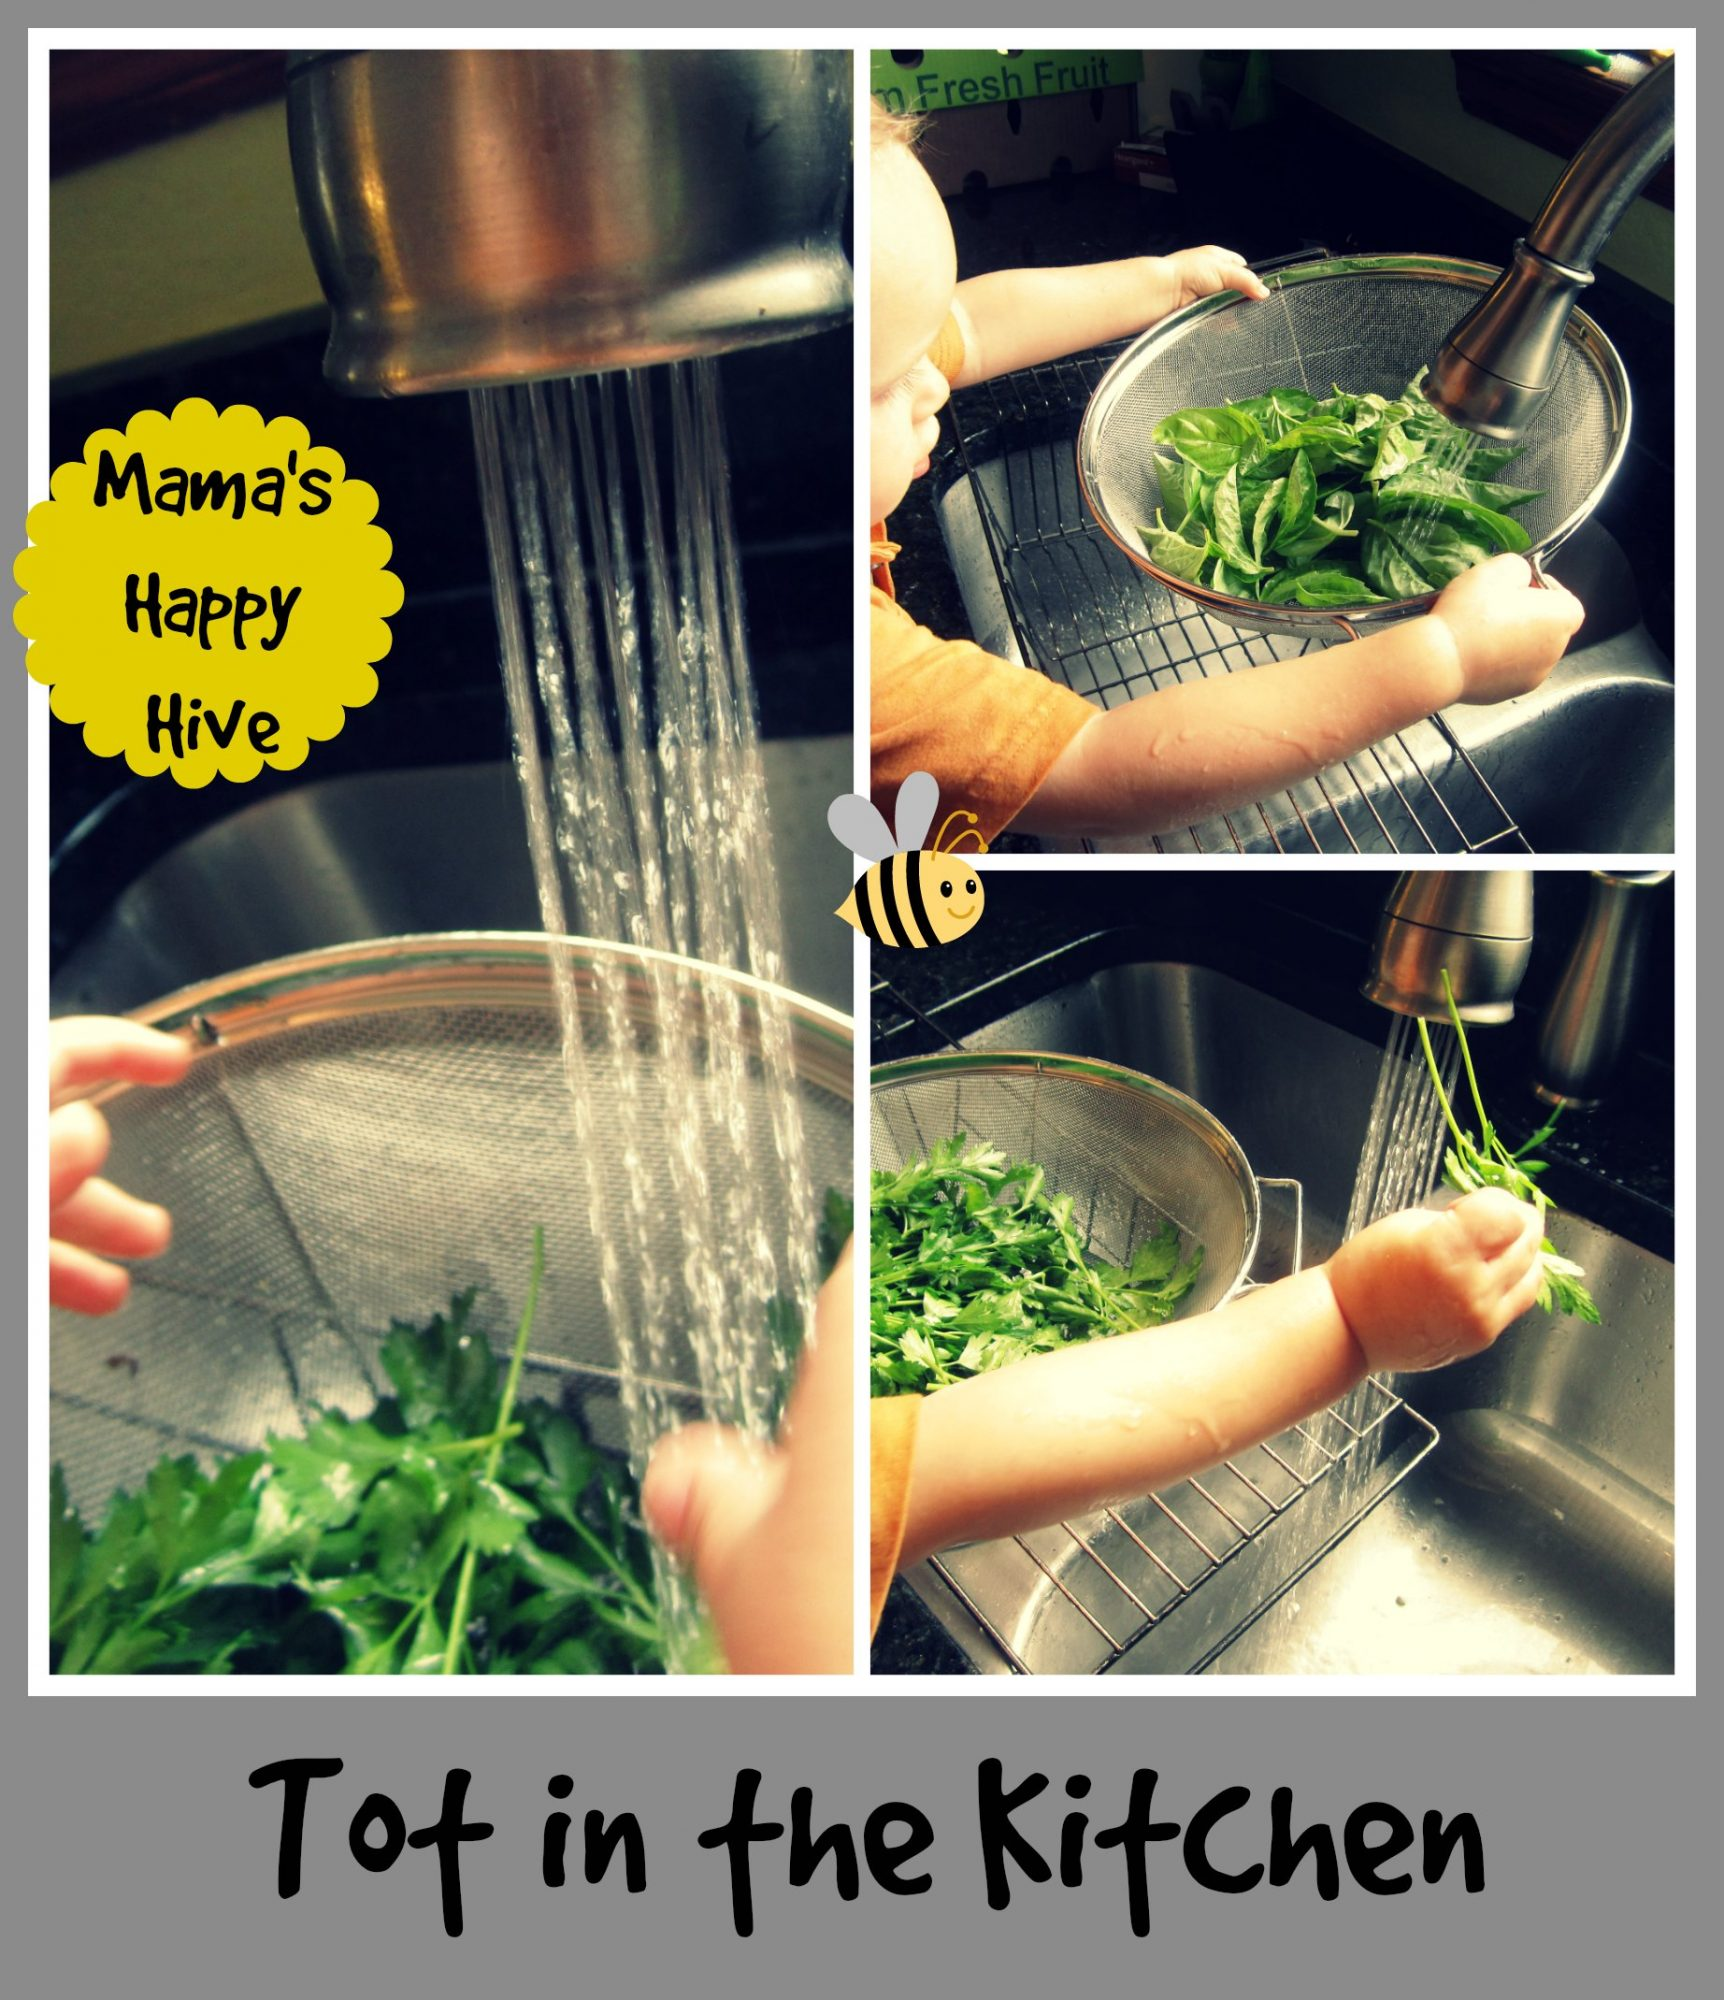 Tot in the Kitchen - www.mamashappyhive.com